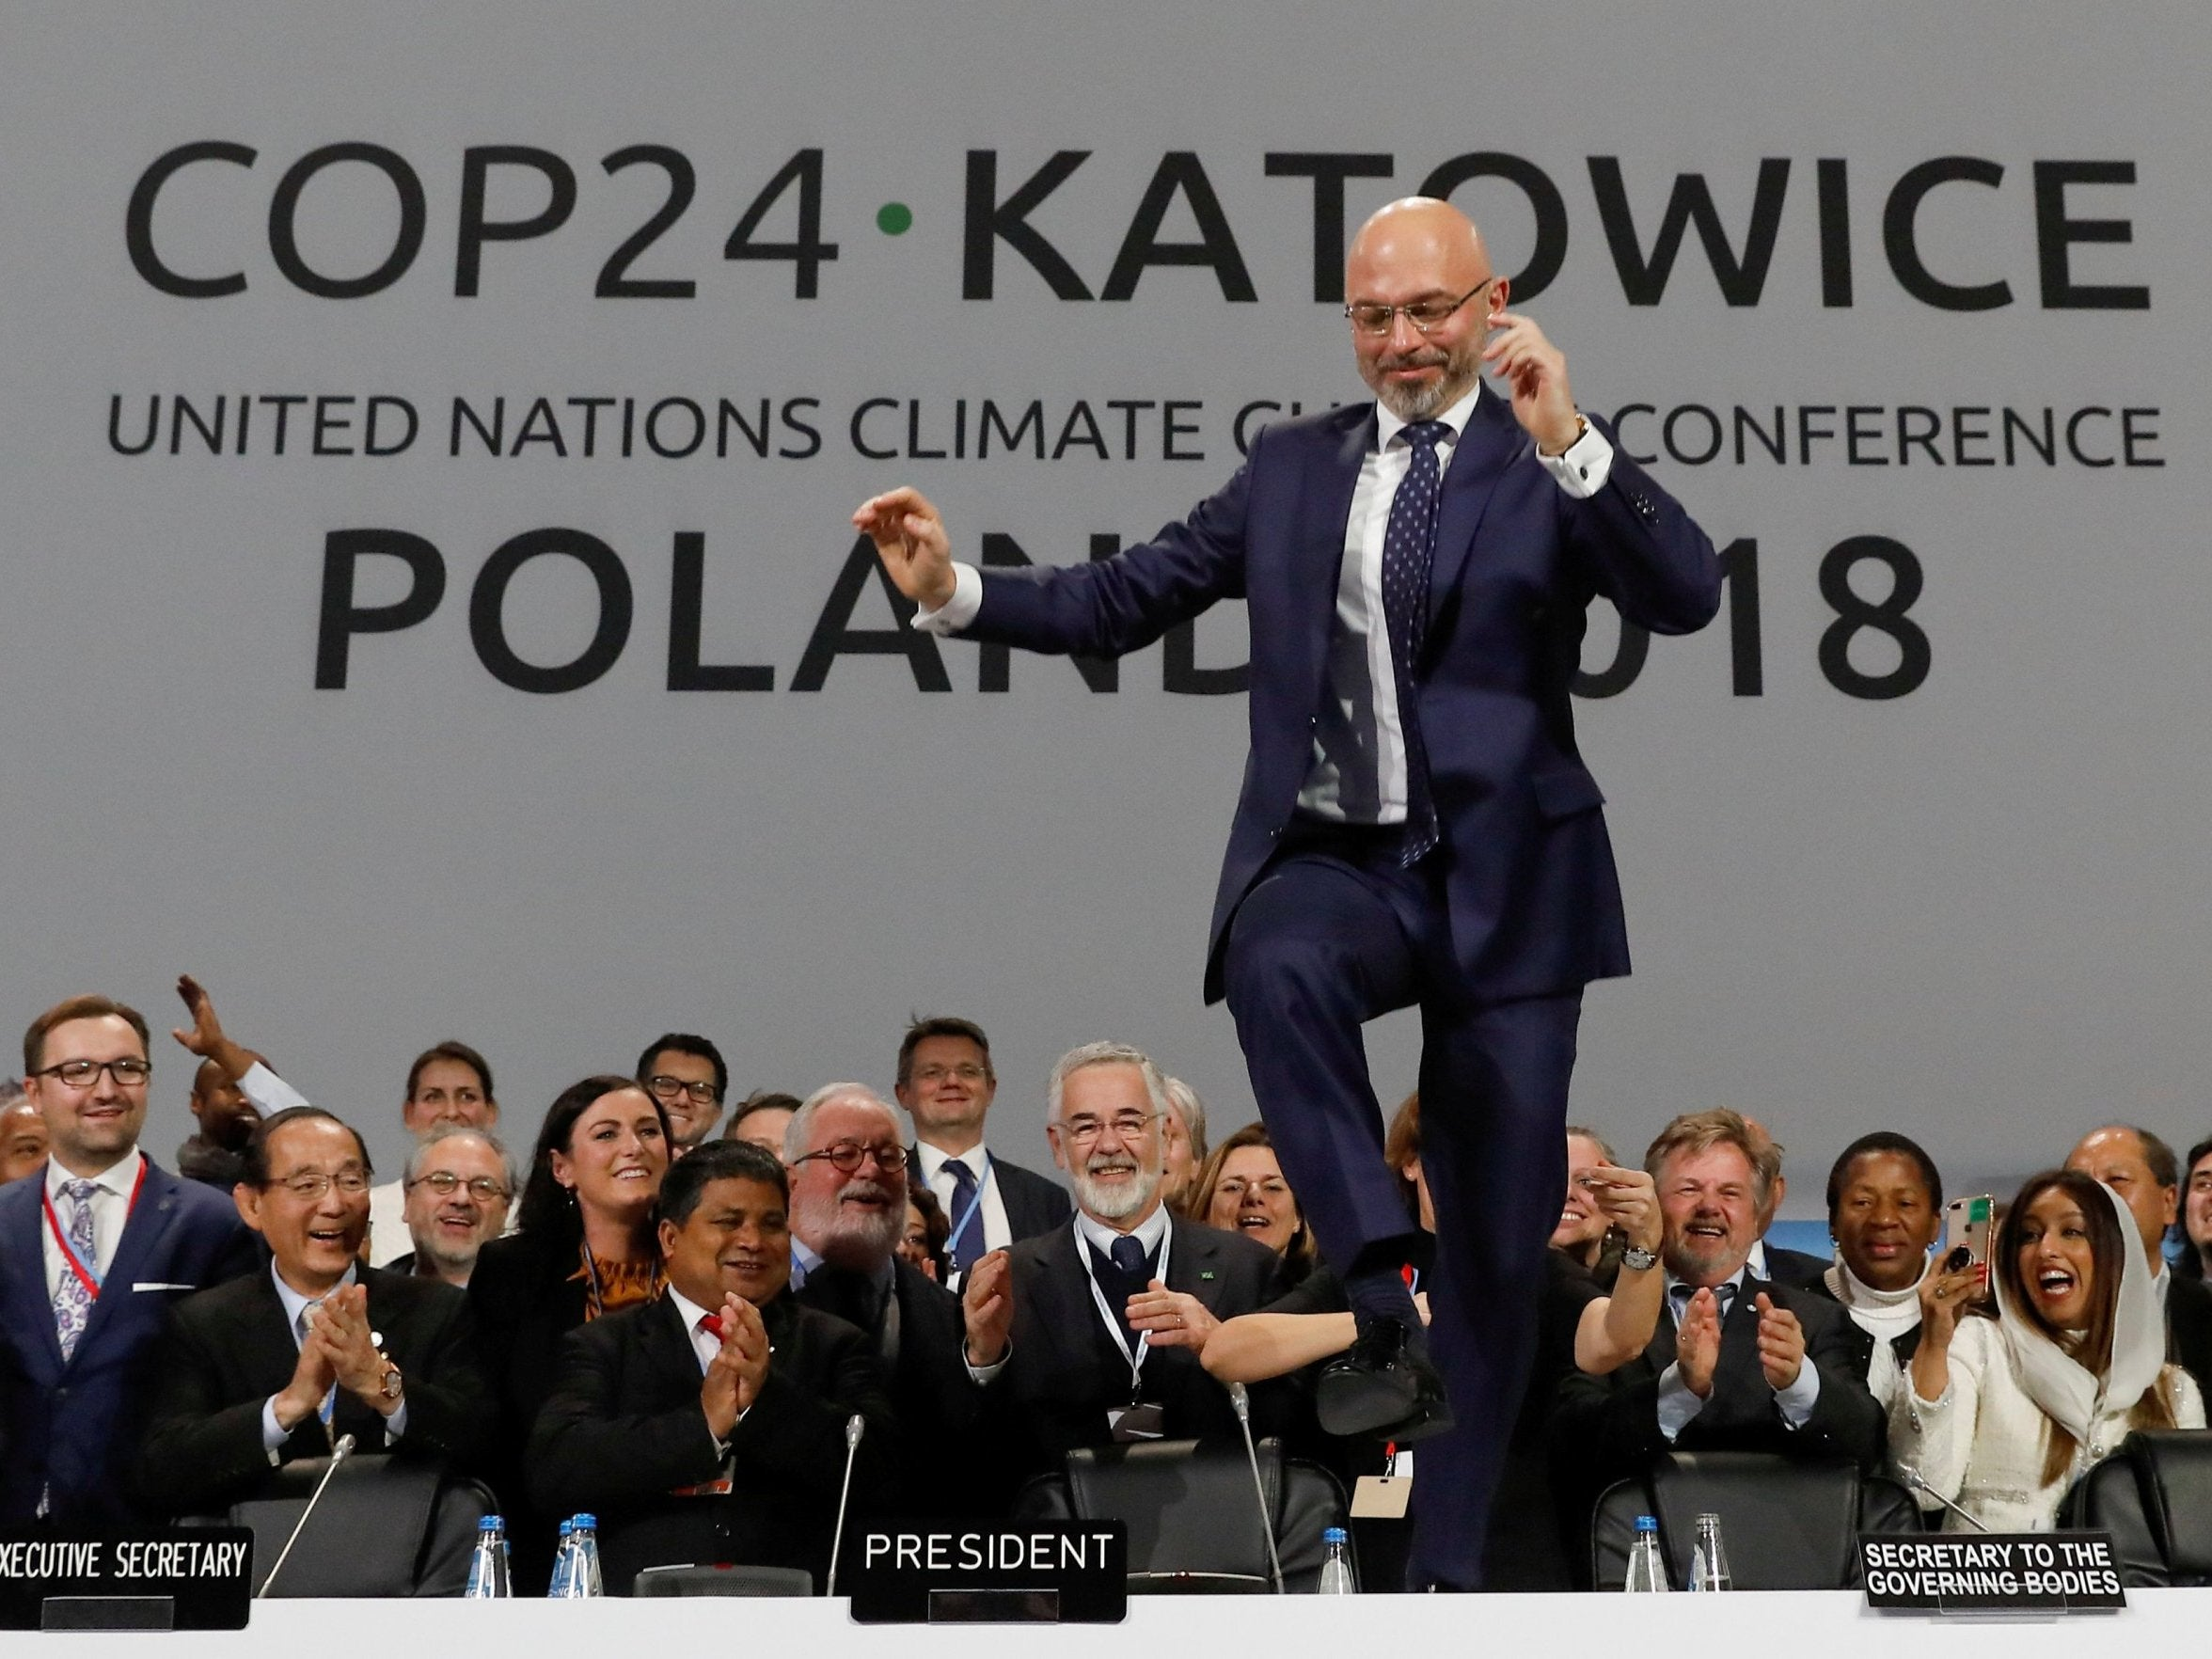 Climate deal reached with almost 200 countries after major summit